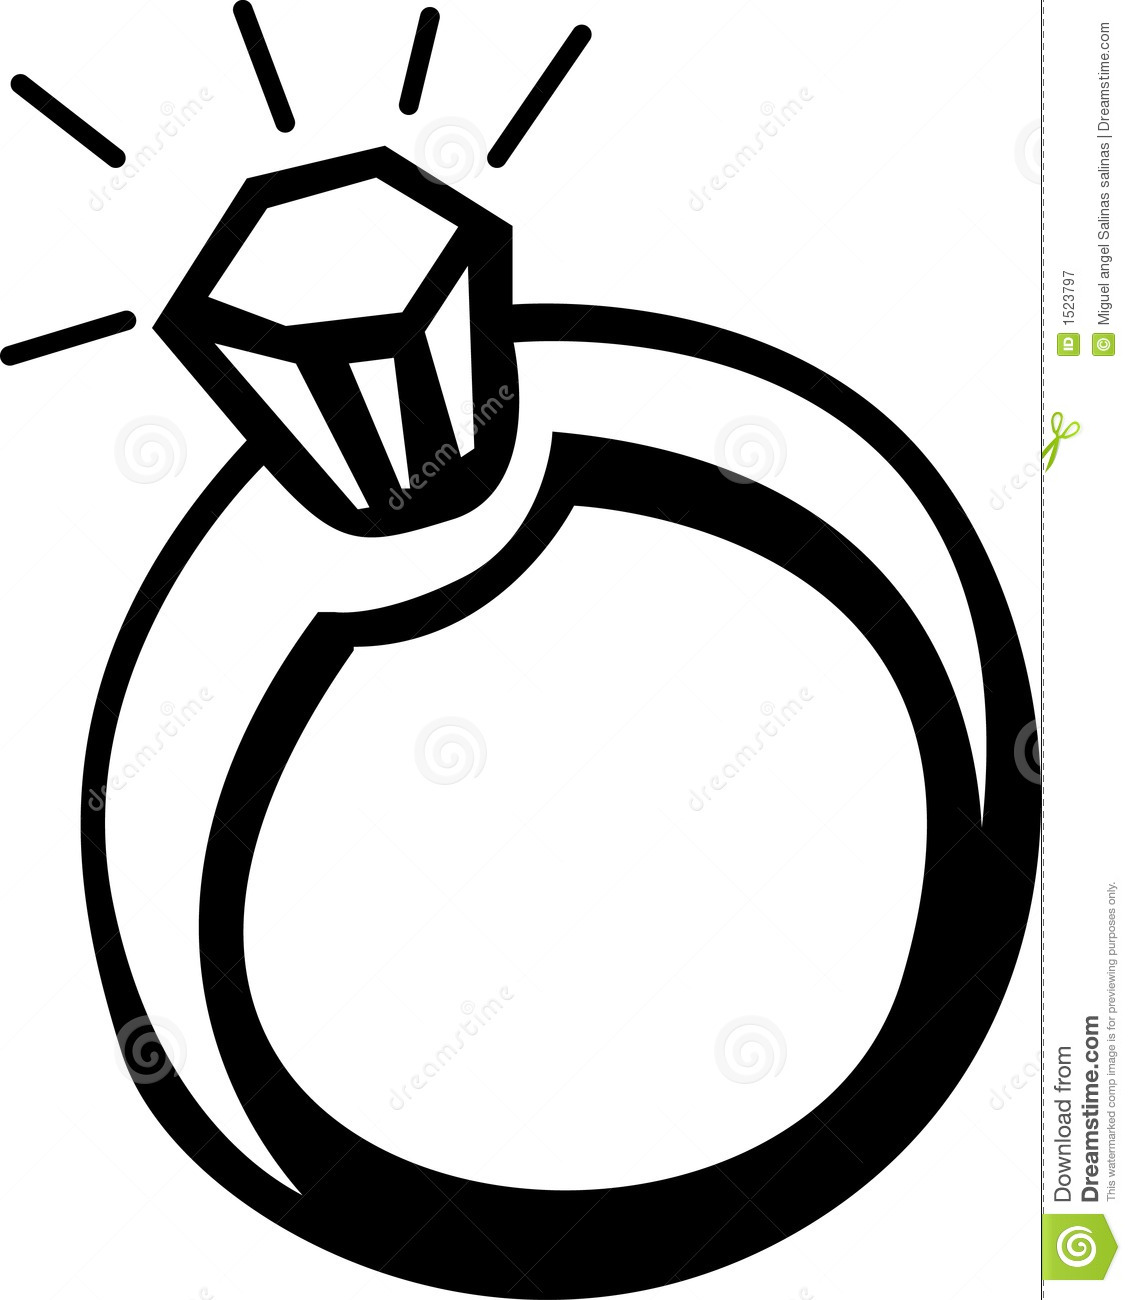 Ring clipart outline.